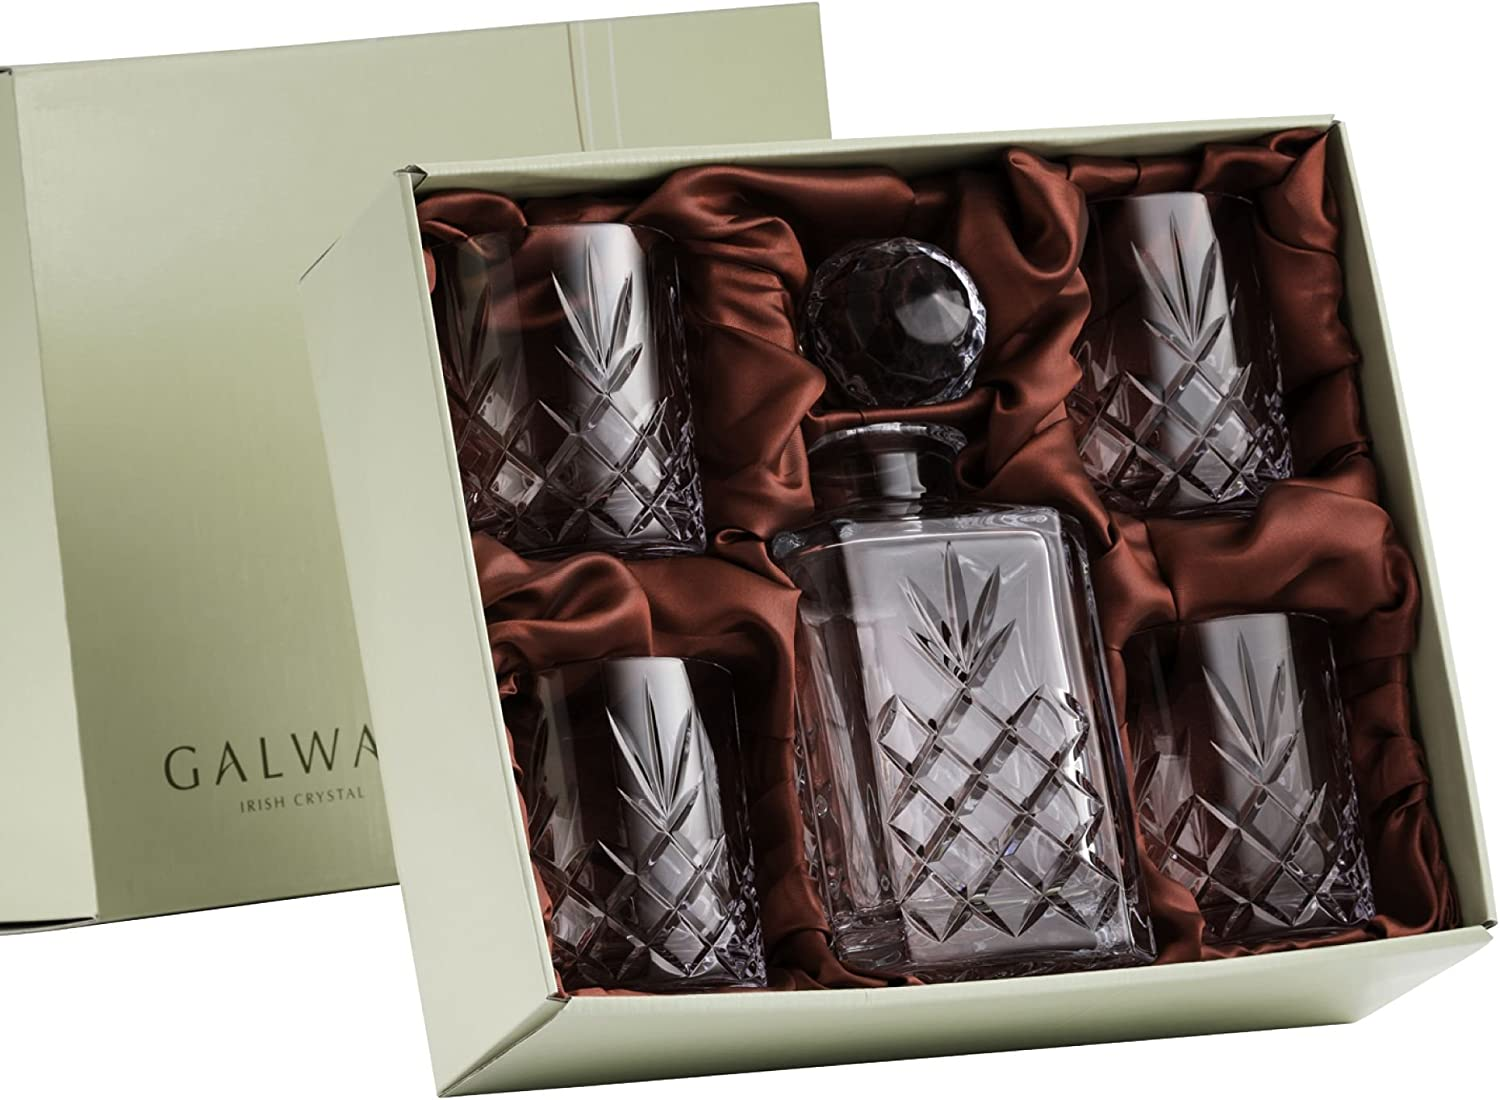 Galway Crystal 35080 Renmore Decanter Drink ware Sets, Transparent